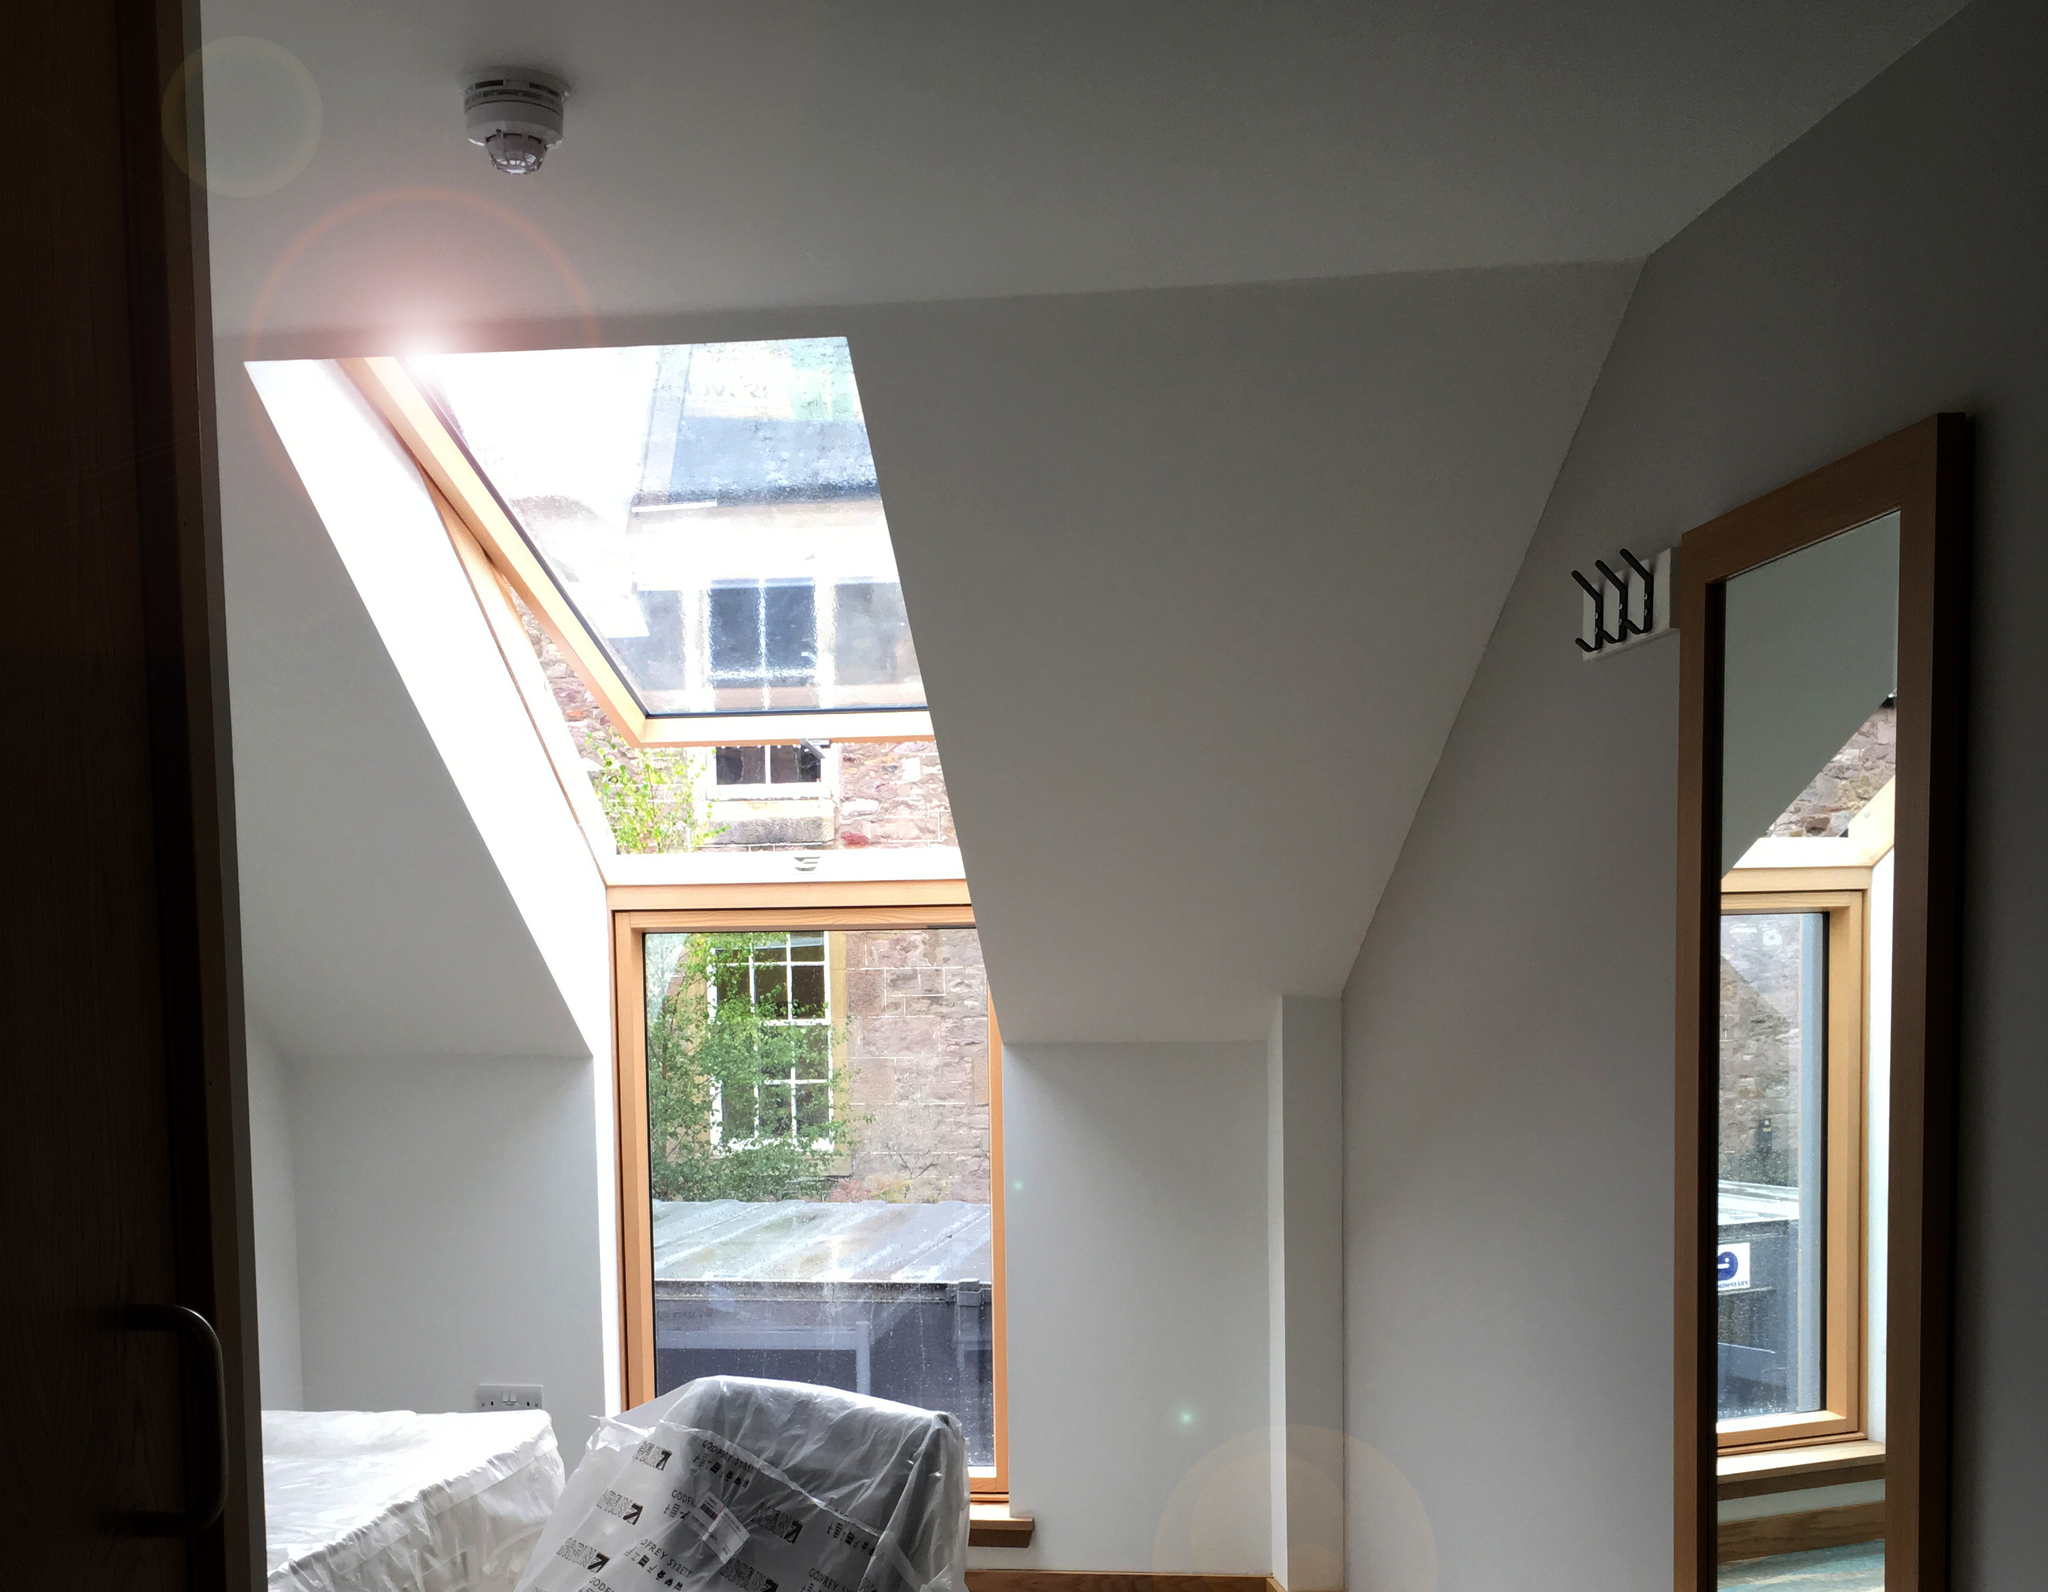 L-Shape combination window in university accommodation